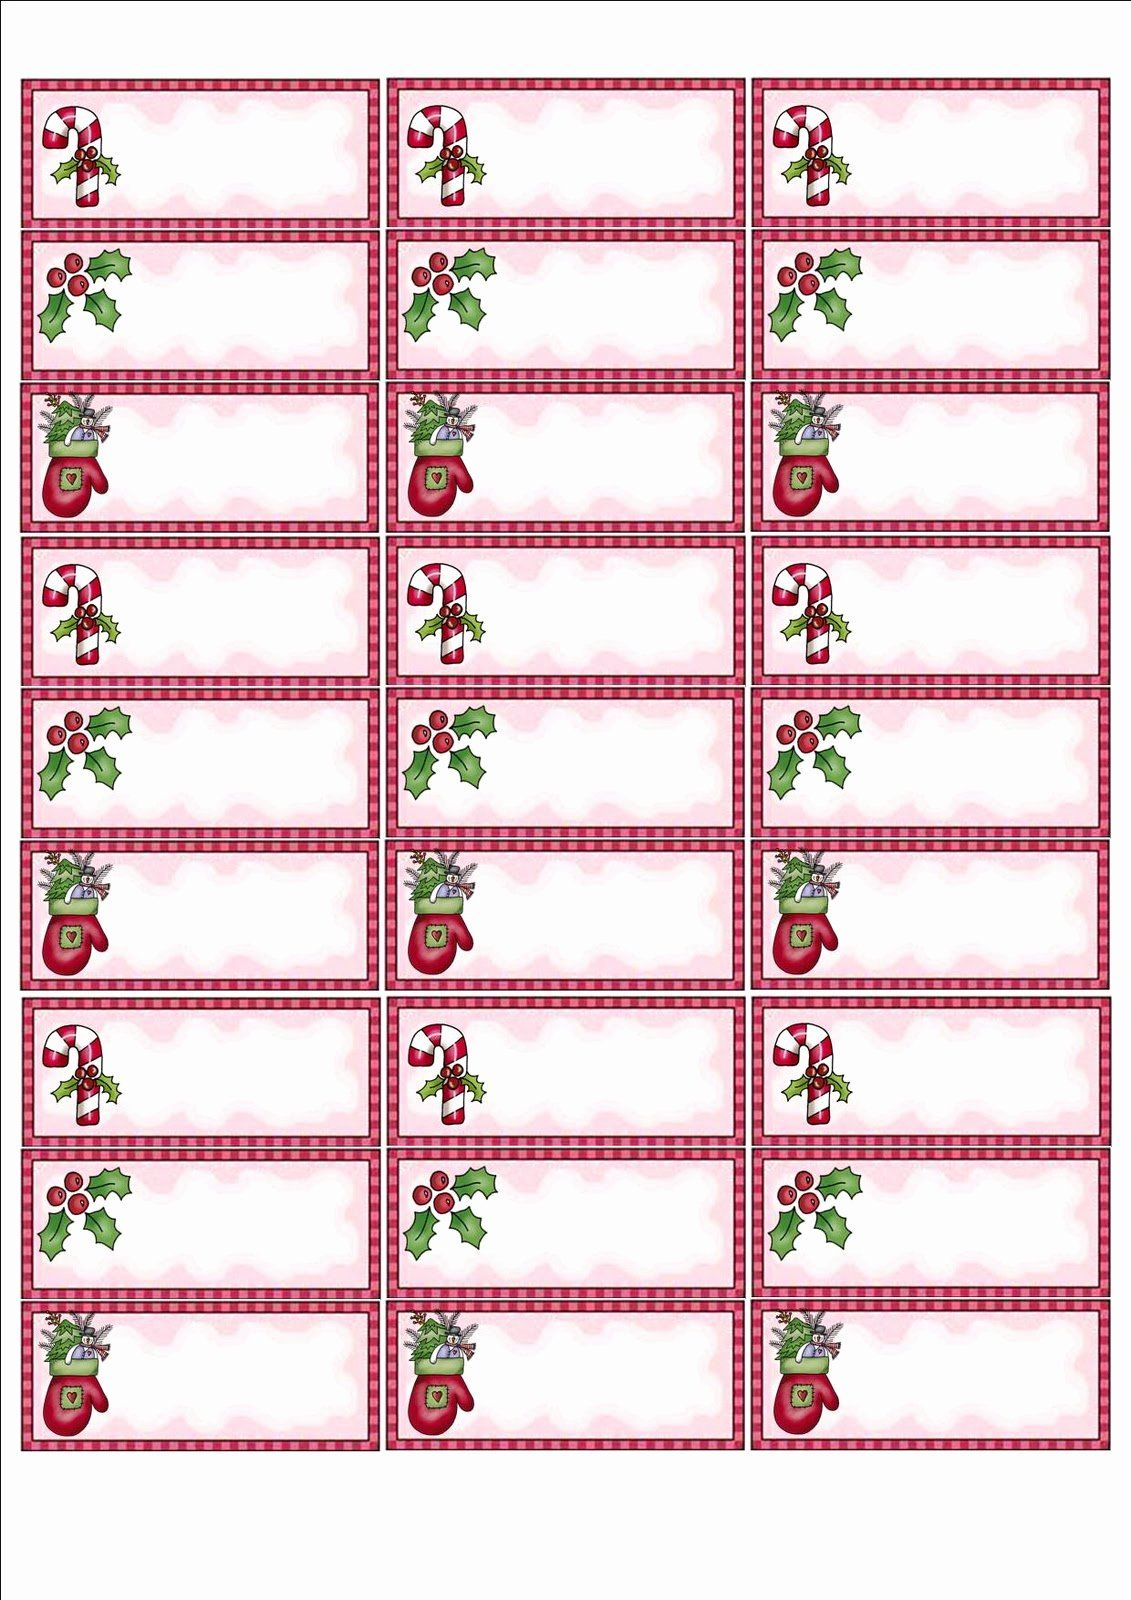 Avery Templates For Google Docs : avery, templates, google, Google, Label, Template, Lovely, Avery, Ninyt, Res…, Christmas, Address, Labels,, Return